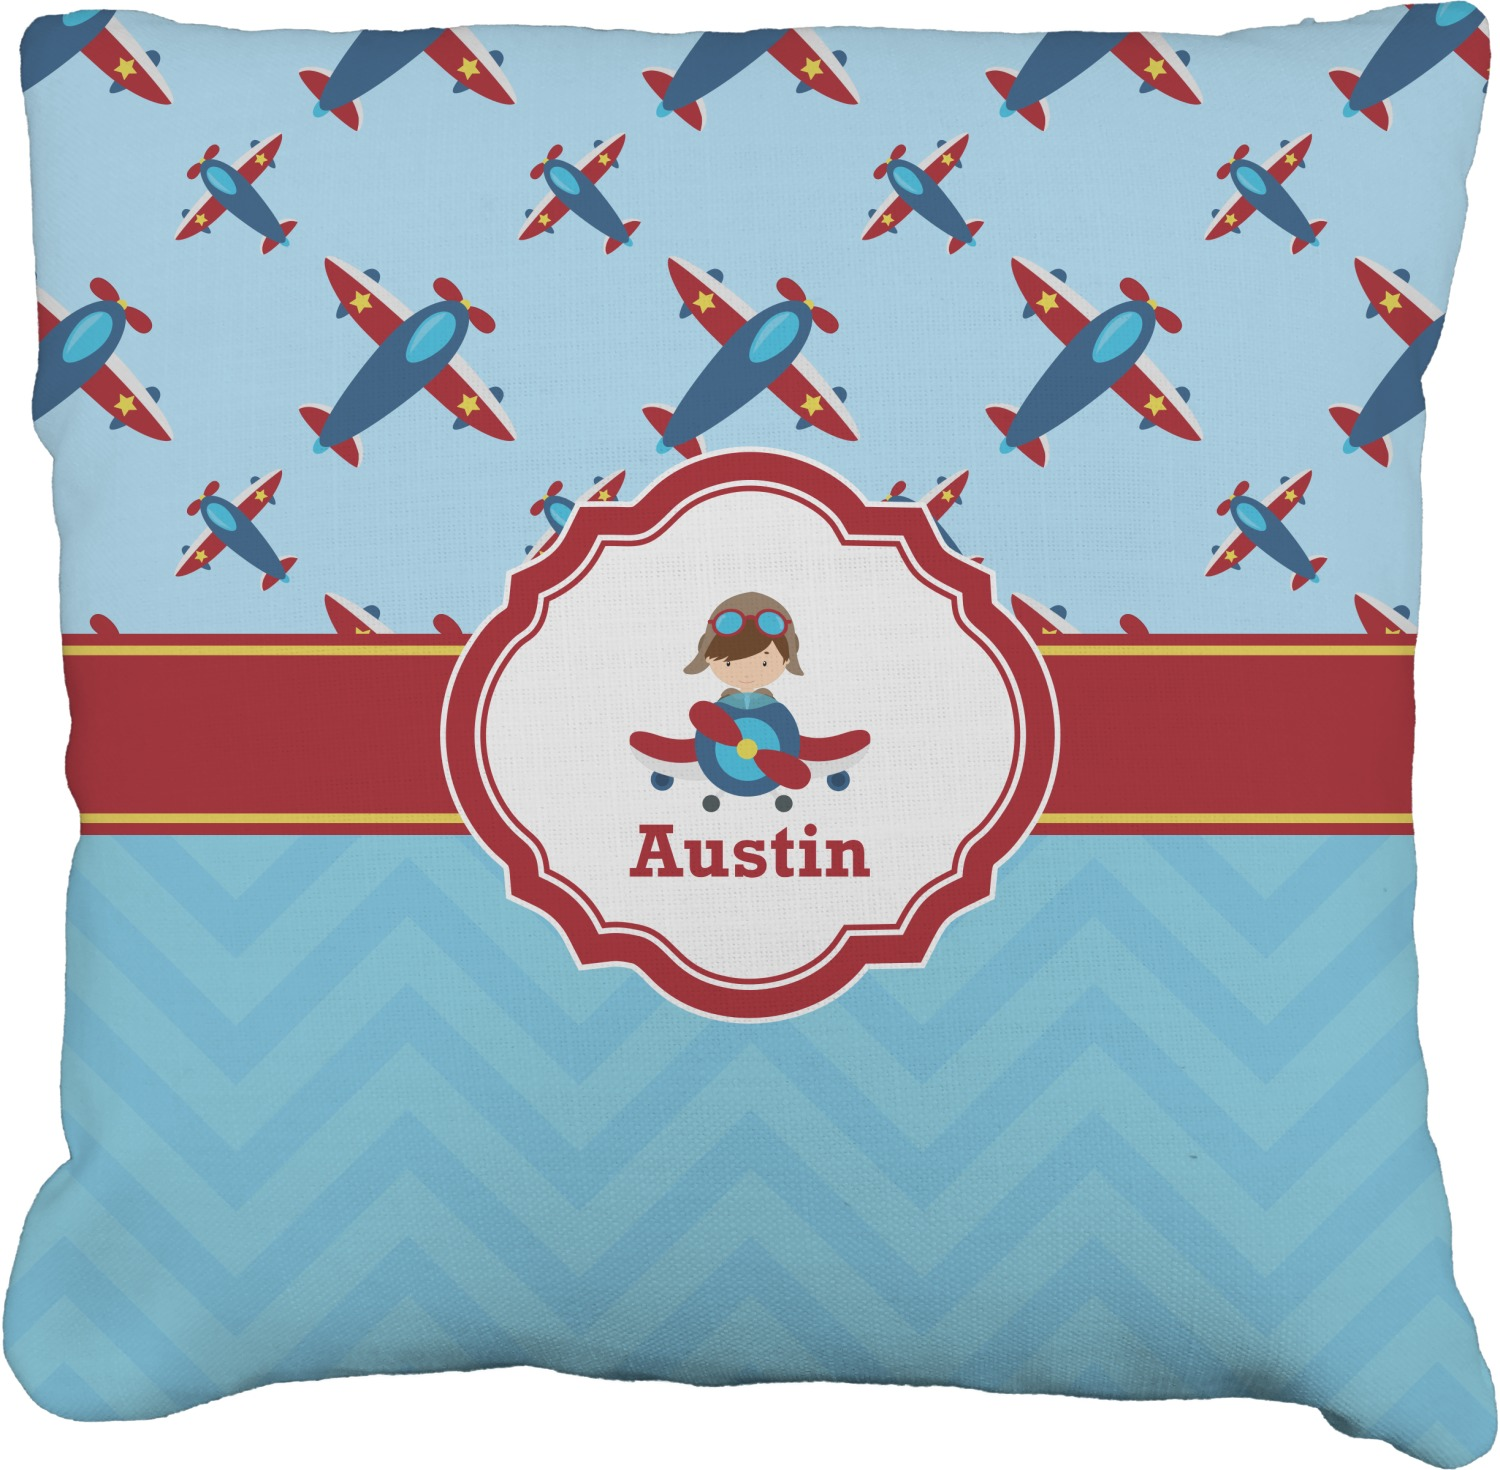 country the you re collection of house picture p s pillow friend square wishes jute youre burlap had